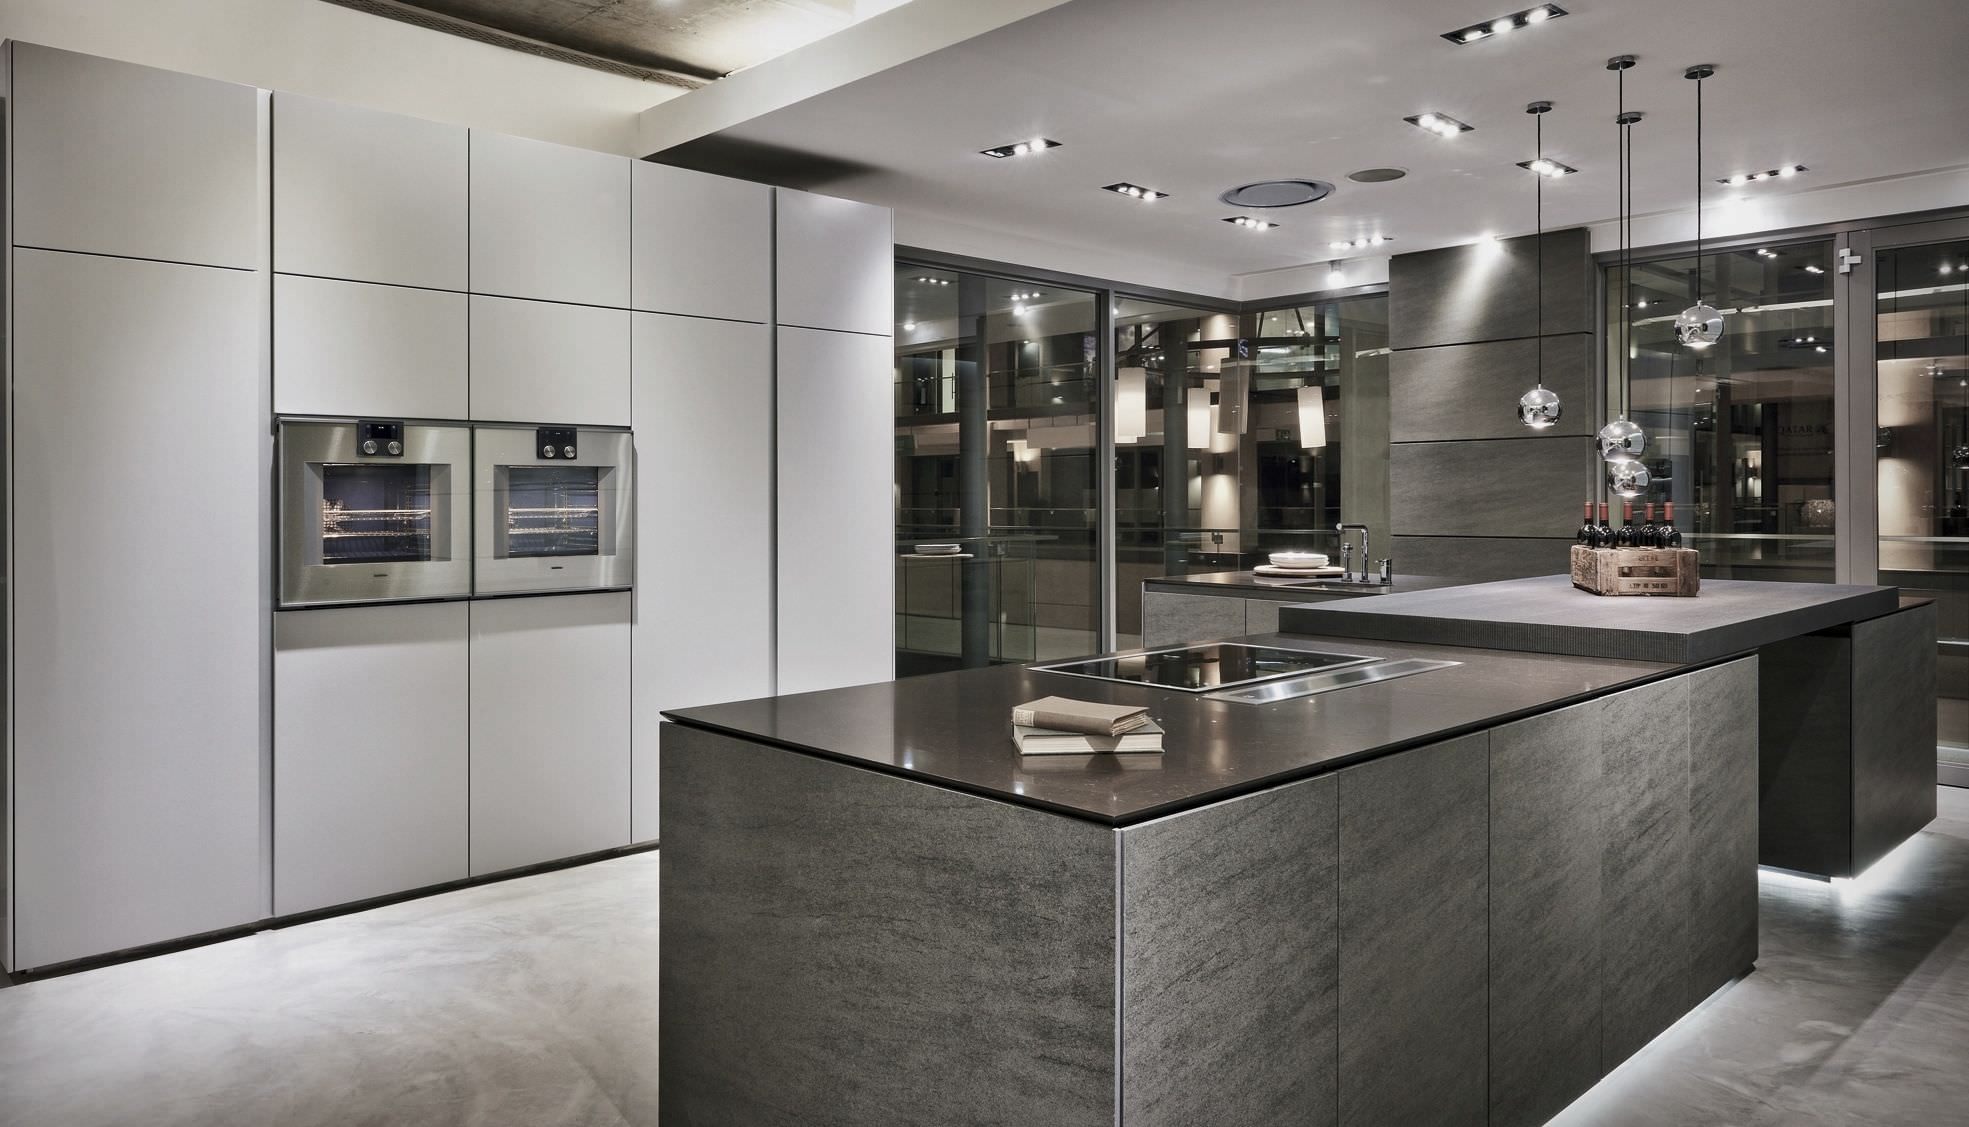 Modern Kitchen Showrooms Luxury Kitchen Showroom  Kitchens  Pinterest  Kitchen Showrooms